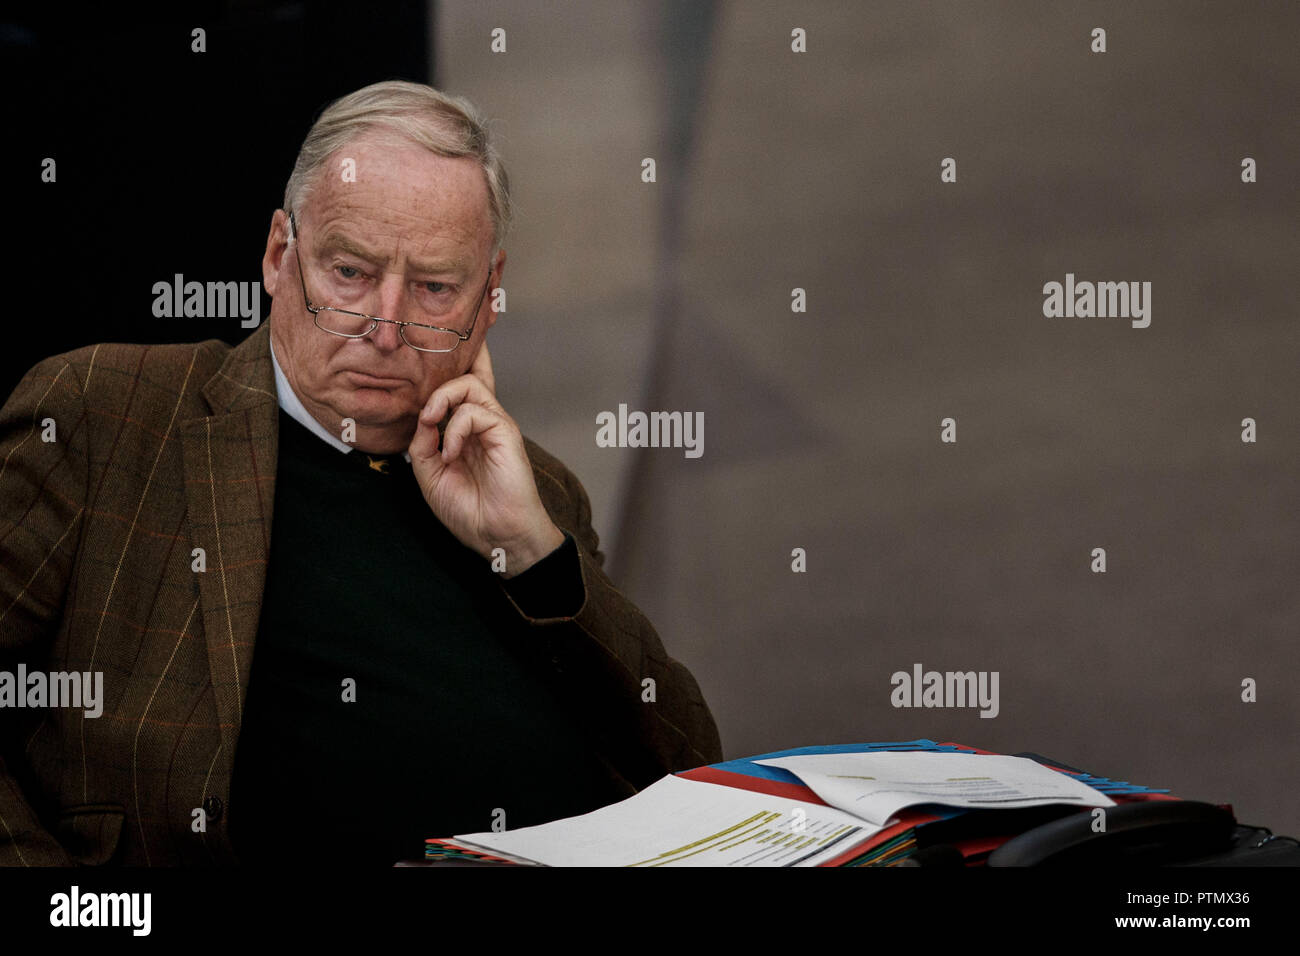 10 October 2018, Berlin: 10 October 2018, Germany, Berlin: Alexander Gauland, Co-Chairman of the AfD Parliamentary Group in the Bundestag, takes part in the 54th session of the German Bundestag during a Question Time to the Federal Government. Photo: Carsten Koall/dpa - Stock Image